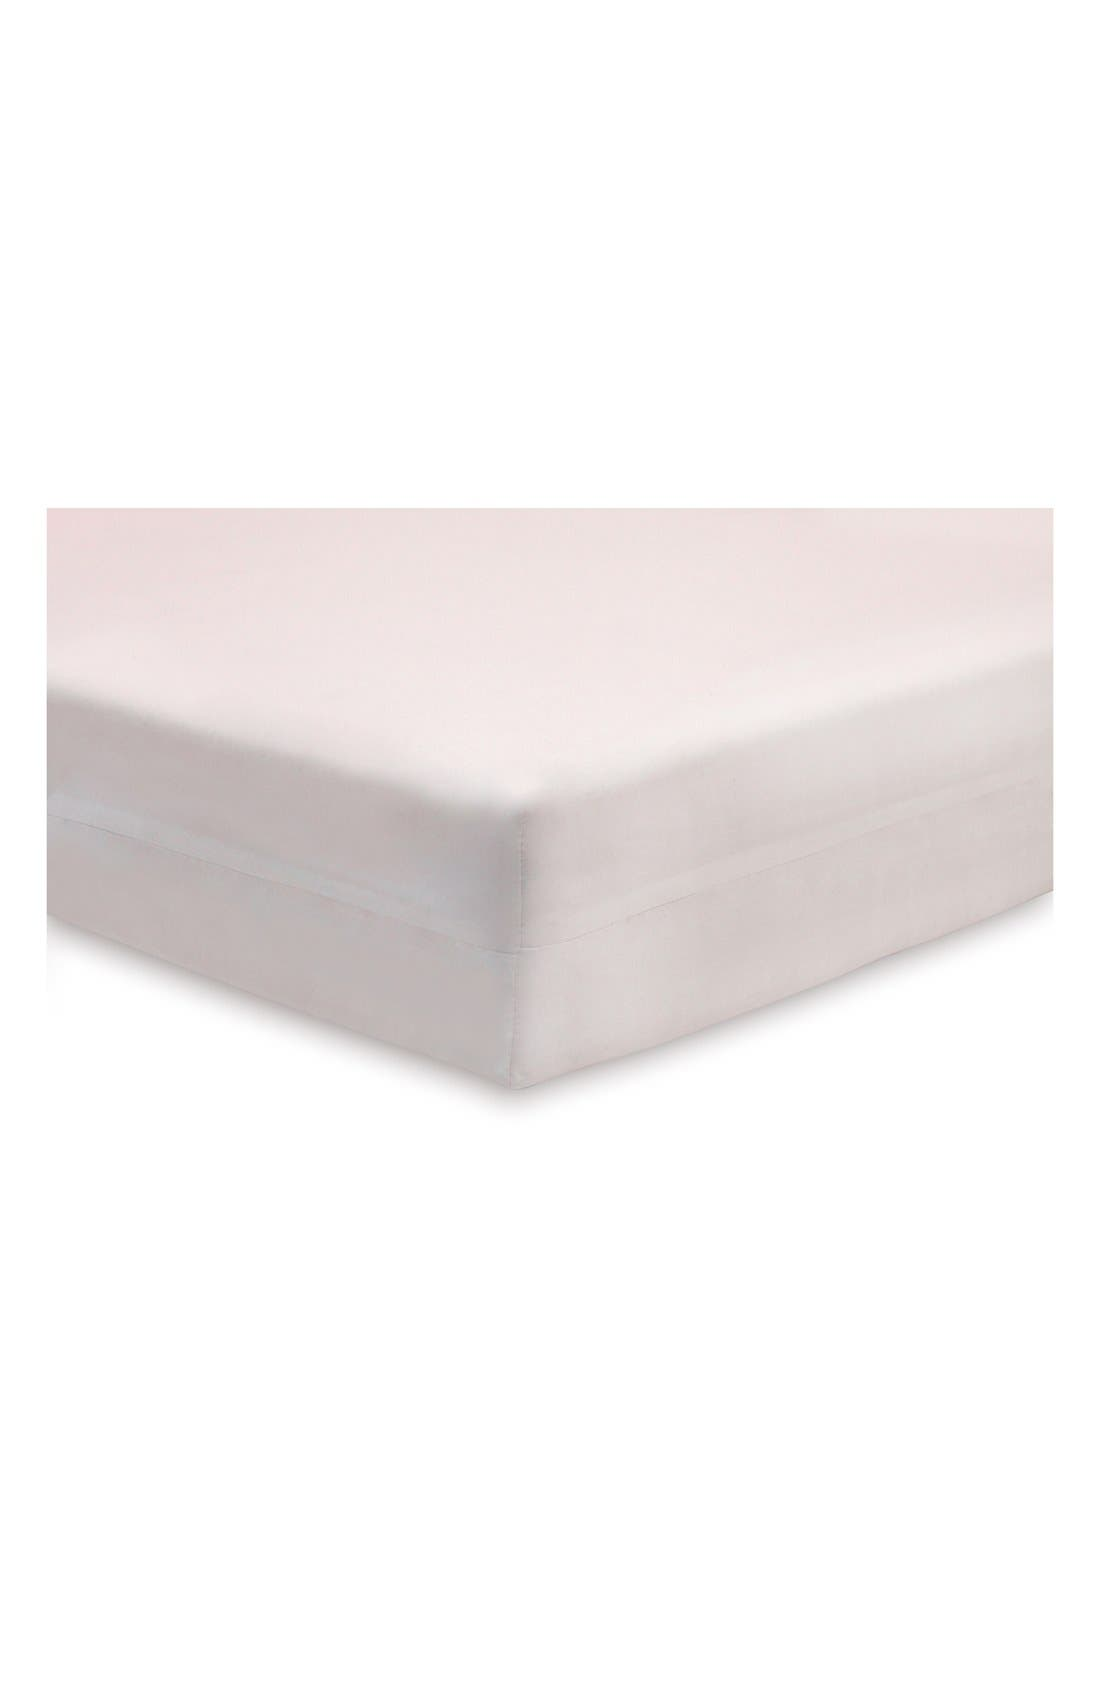 'Pure Core' Nontoxic Crib Mattress & Water Repellent SMART Cover,                             Alternate thumbnail 2, color,                             100